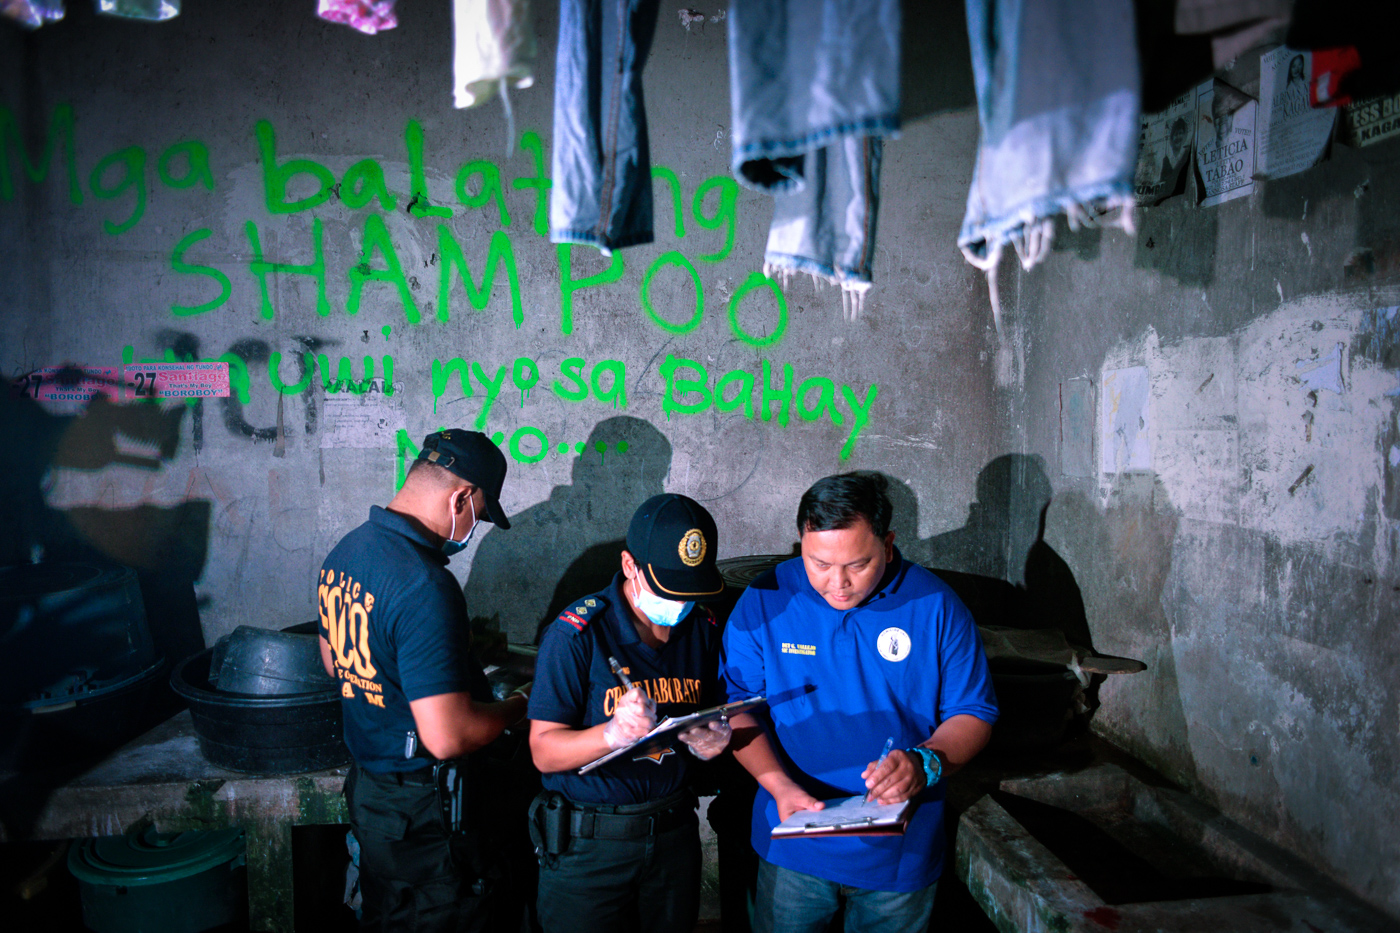 NEW RECORDS. Police collect information after an anti-drug operation turned bloody, leaving one suspect dead. File photo by LeAnne Jazul/Rappler